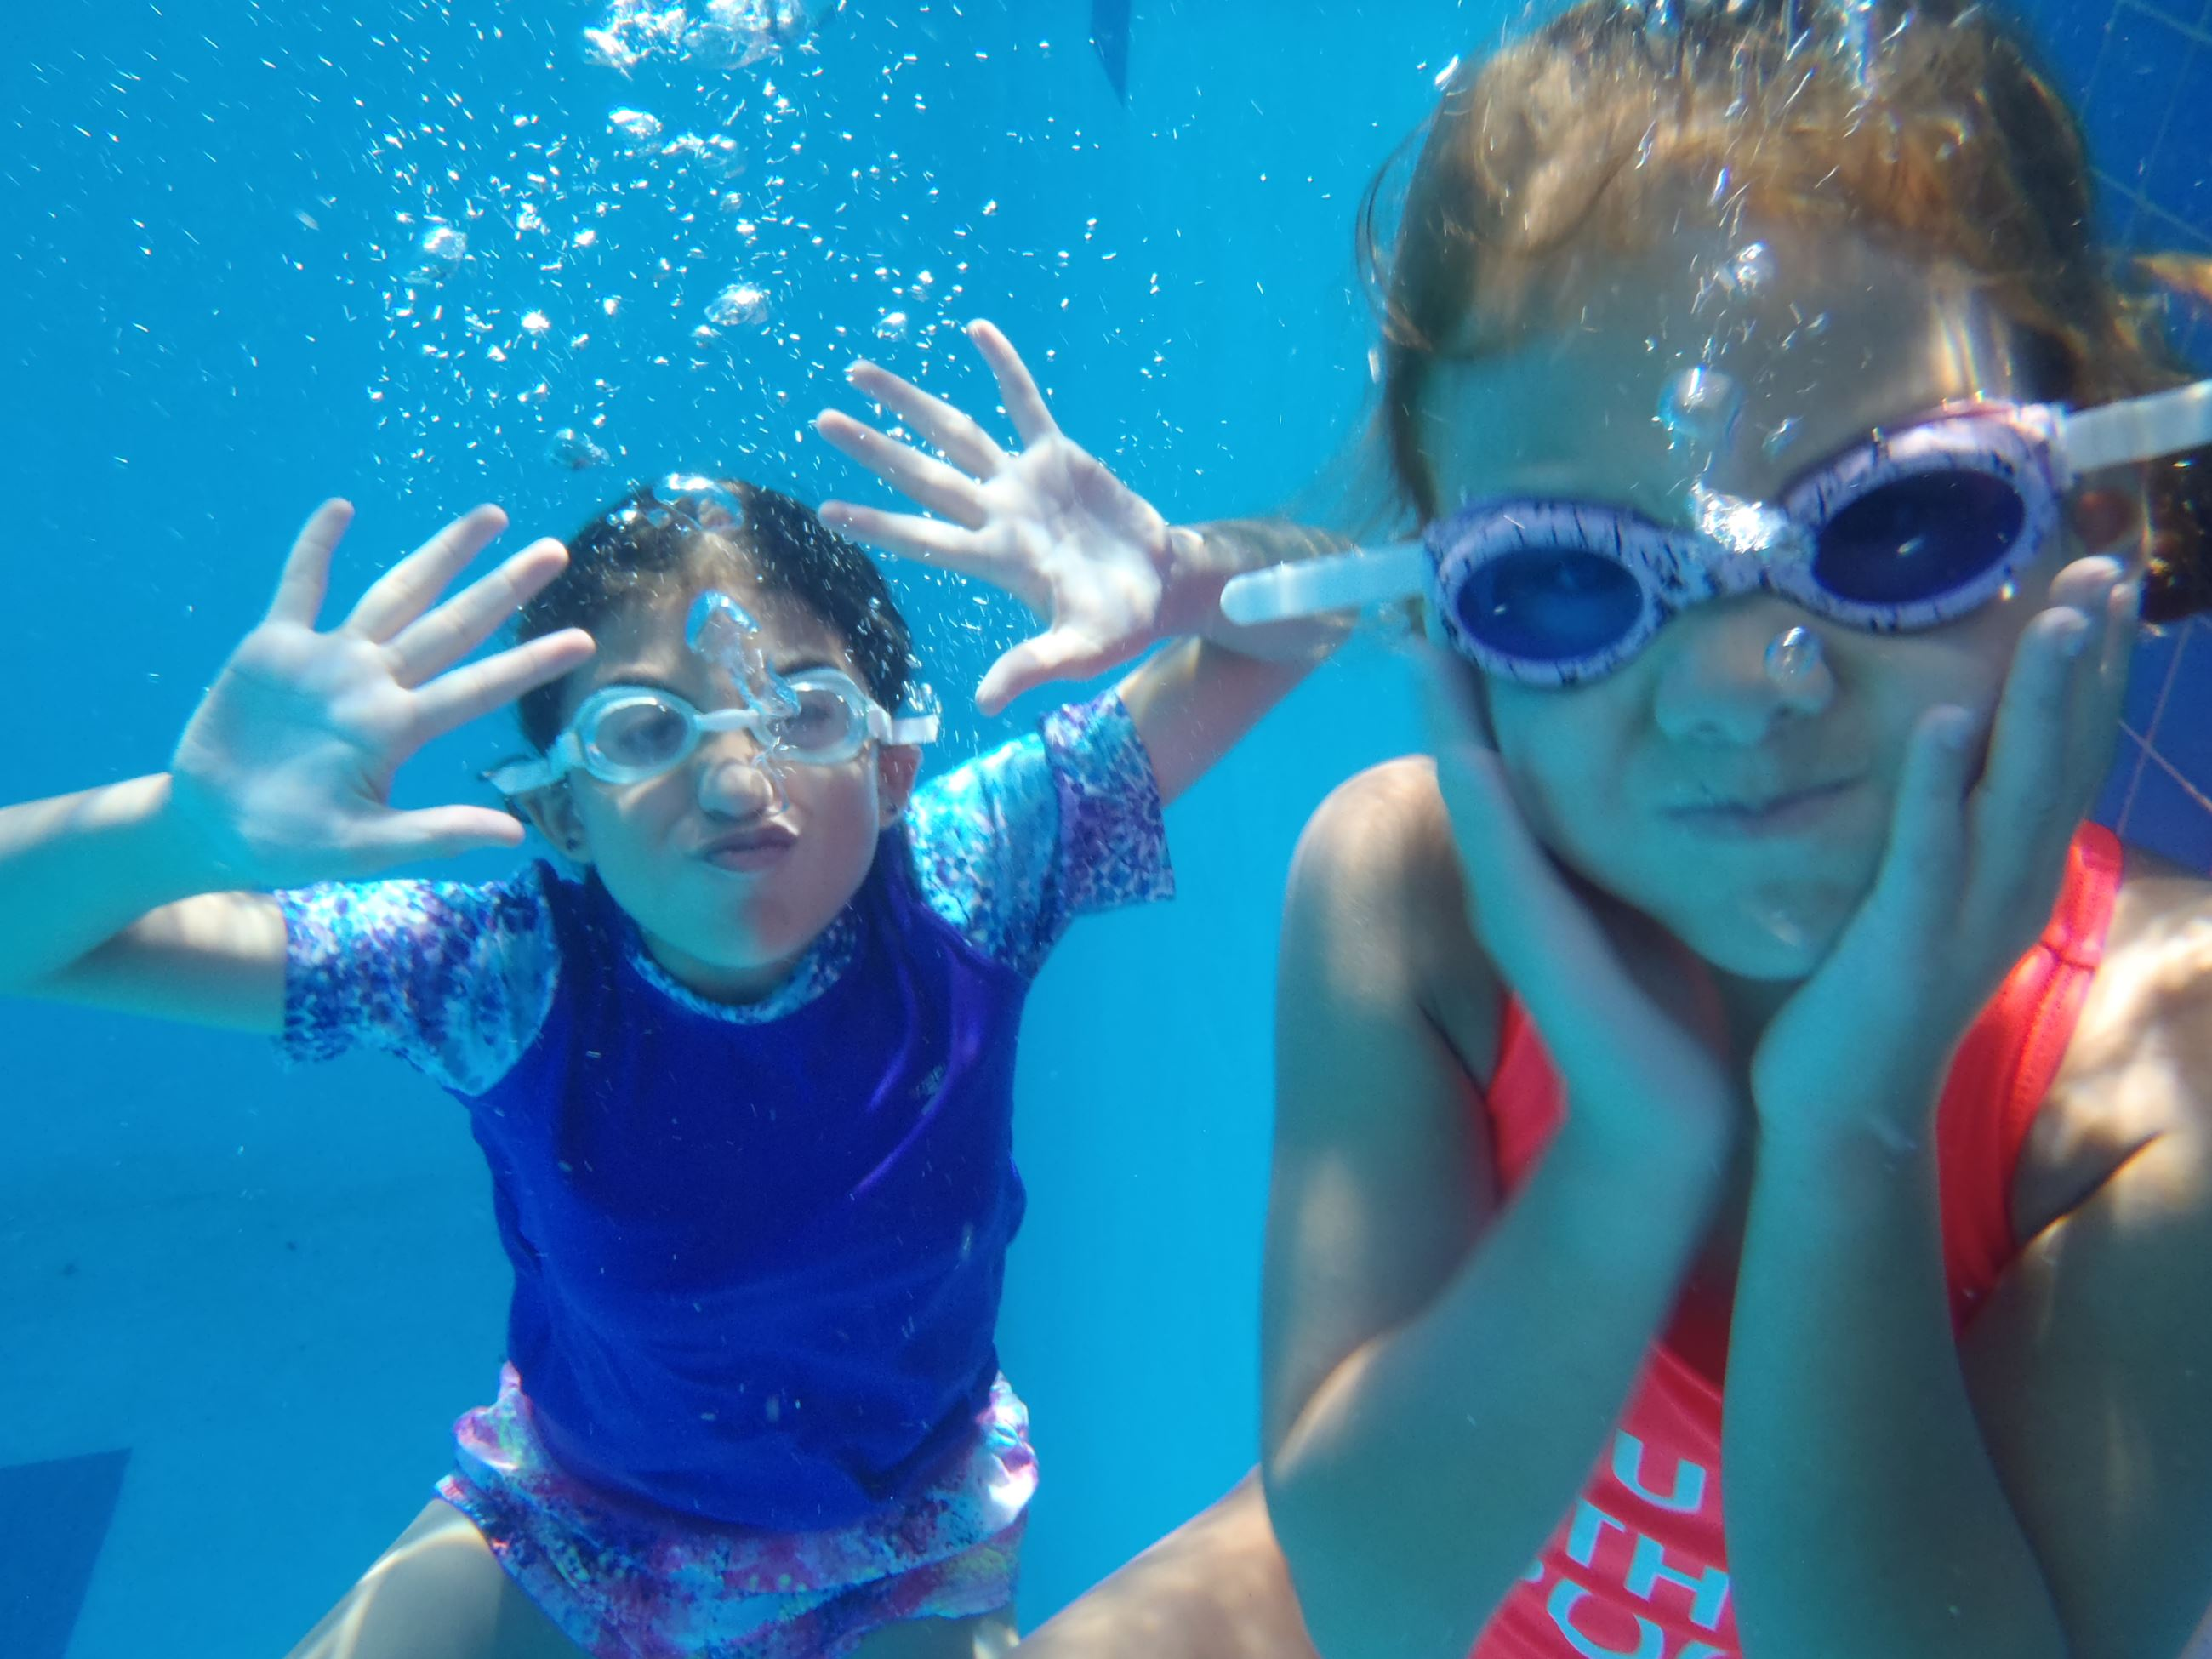 Two girls underwater